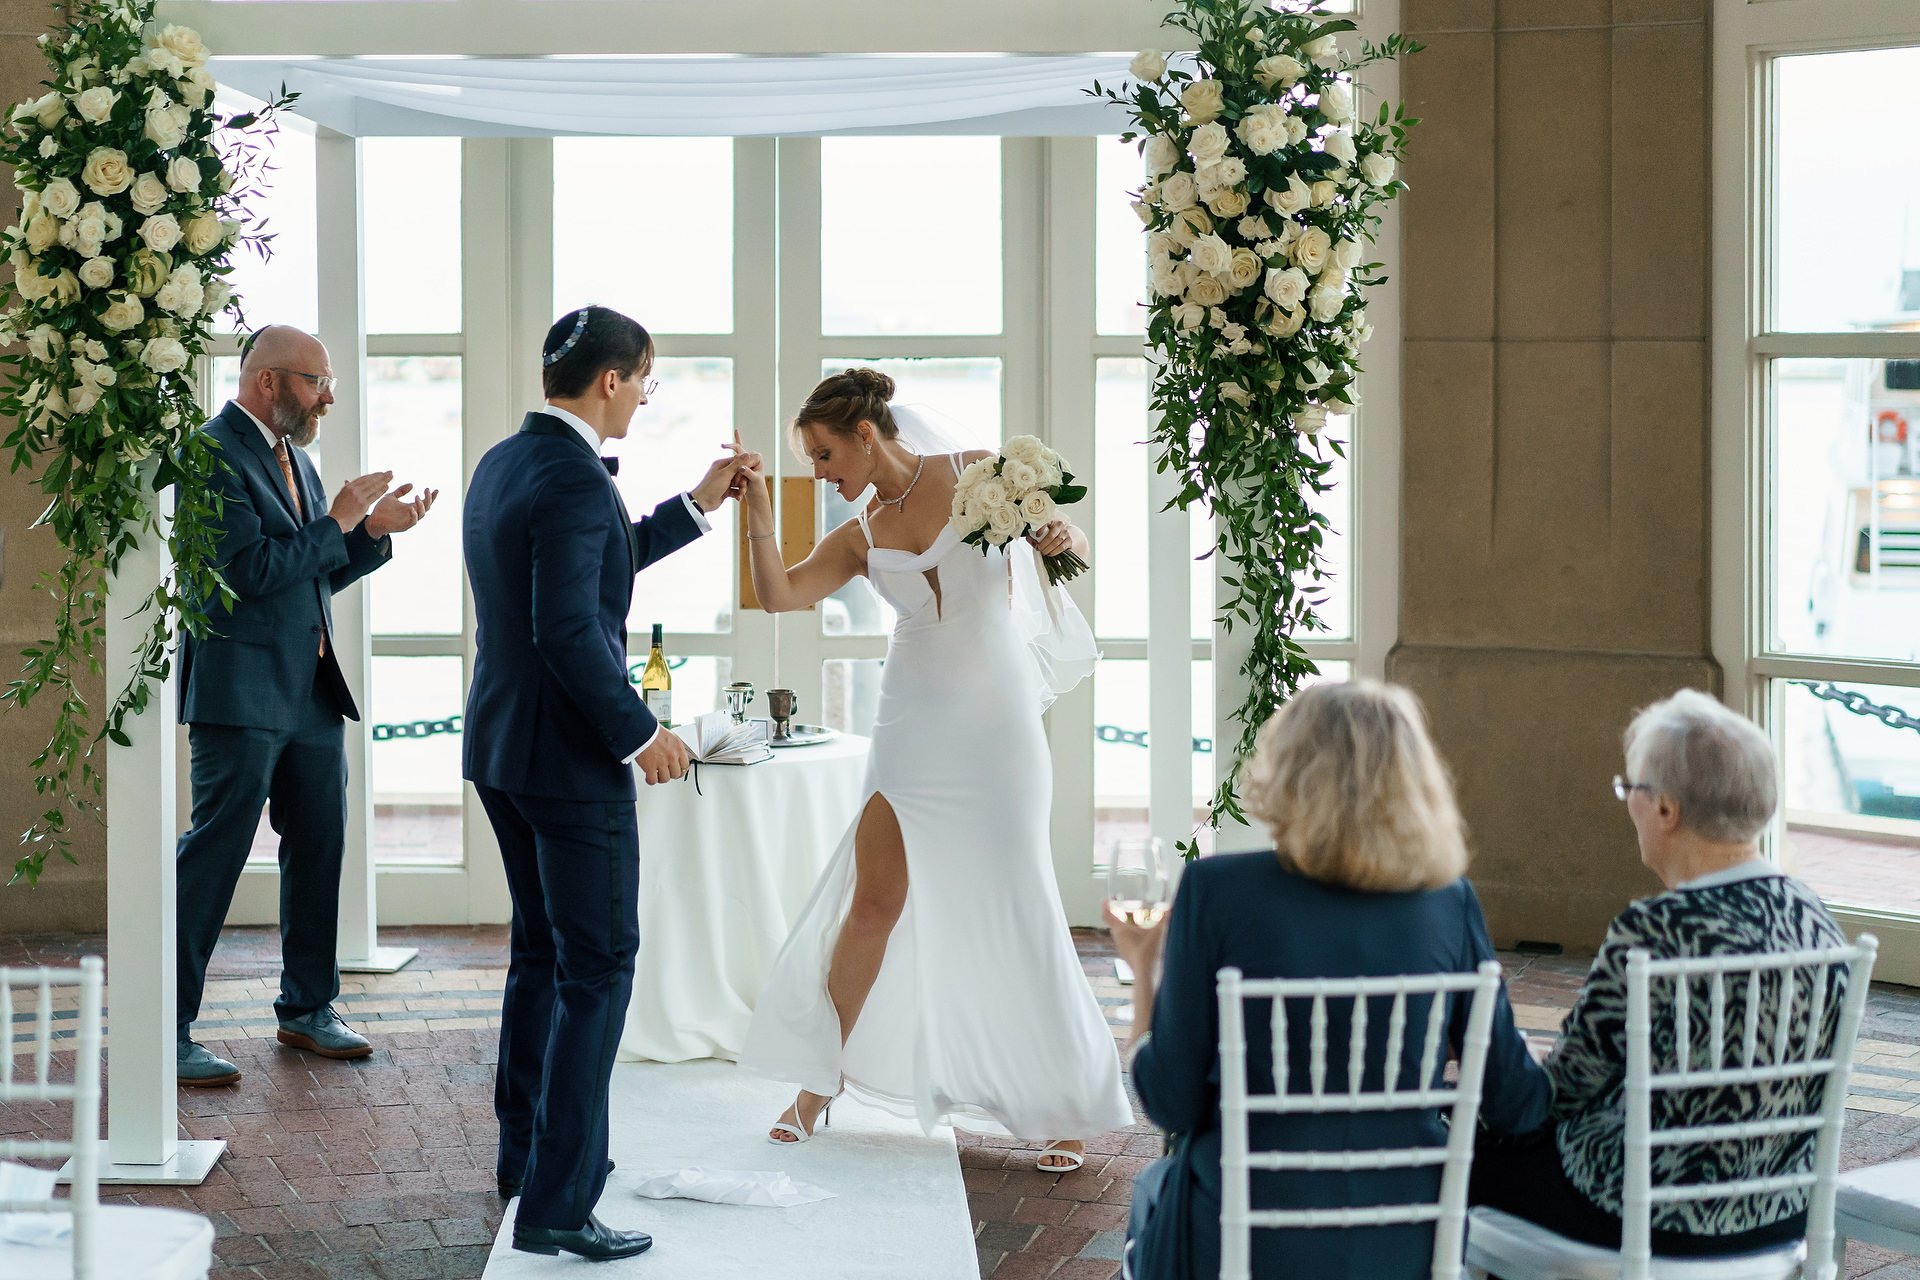 Boston Harbor Hotel Wedding Photos | The couple concludes the ceremony with a Jewish tradition